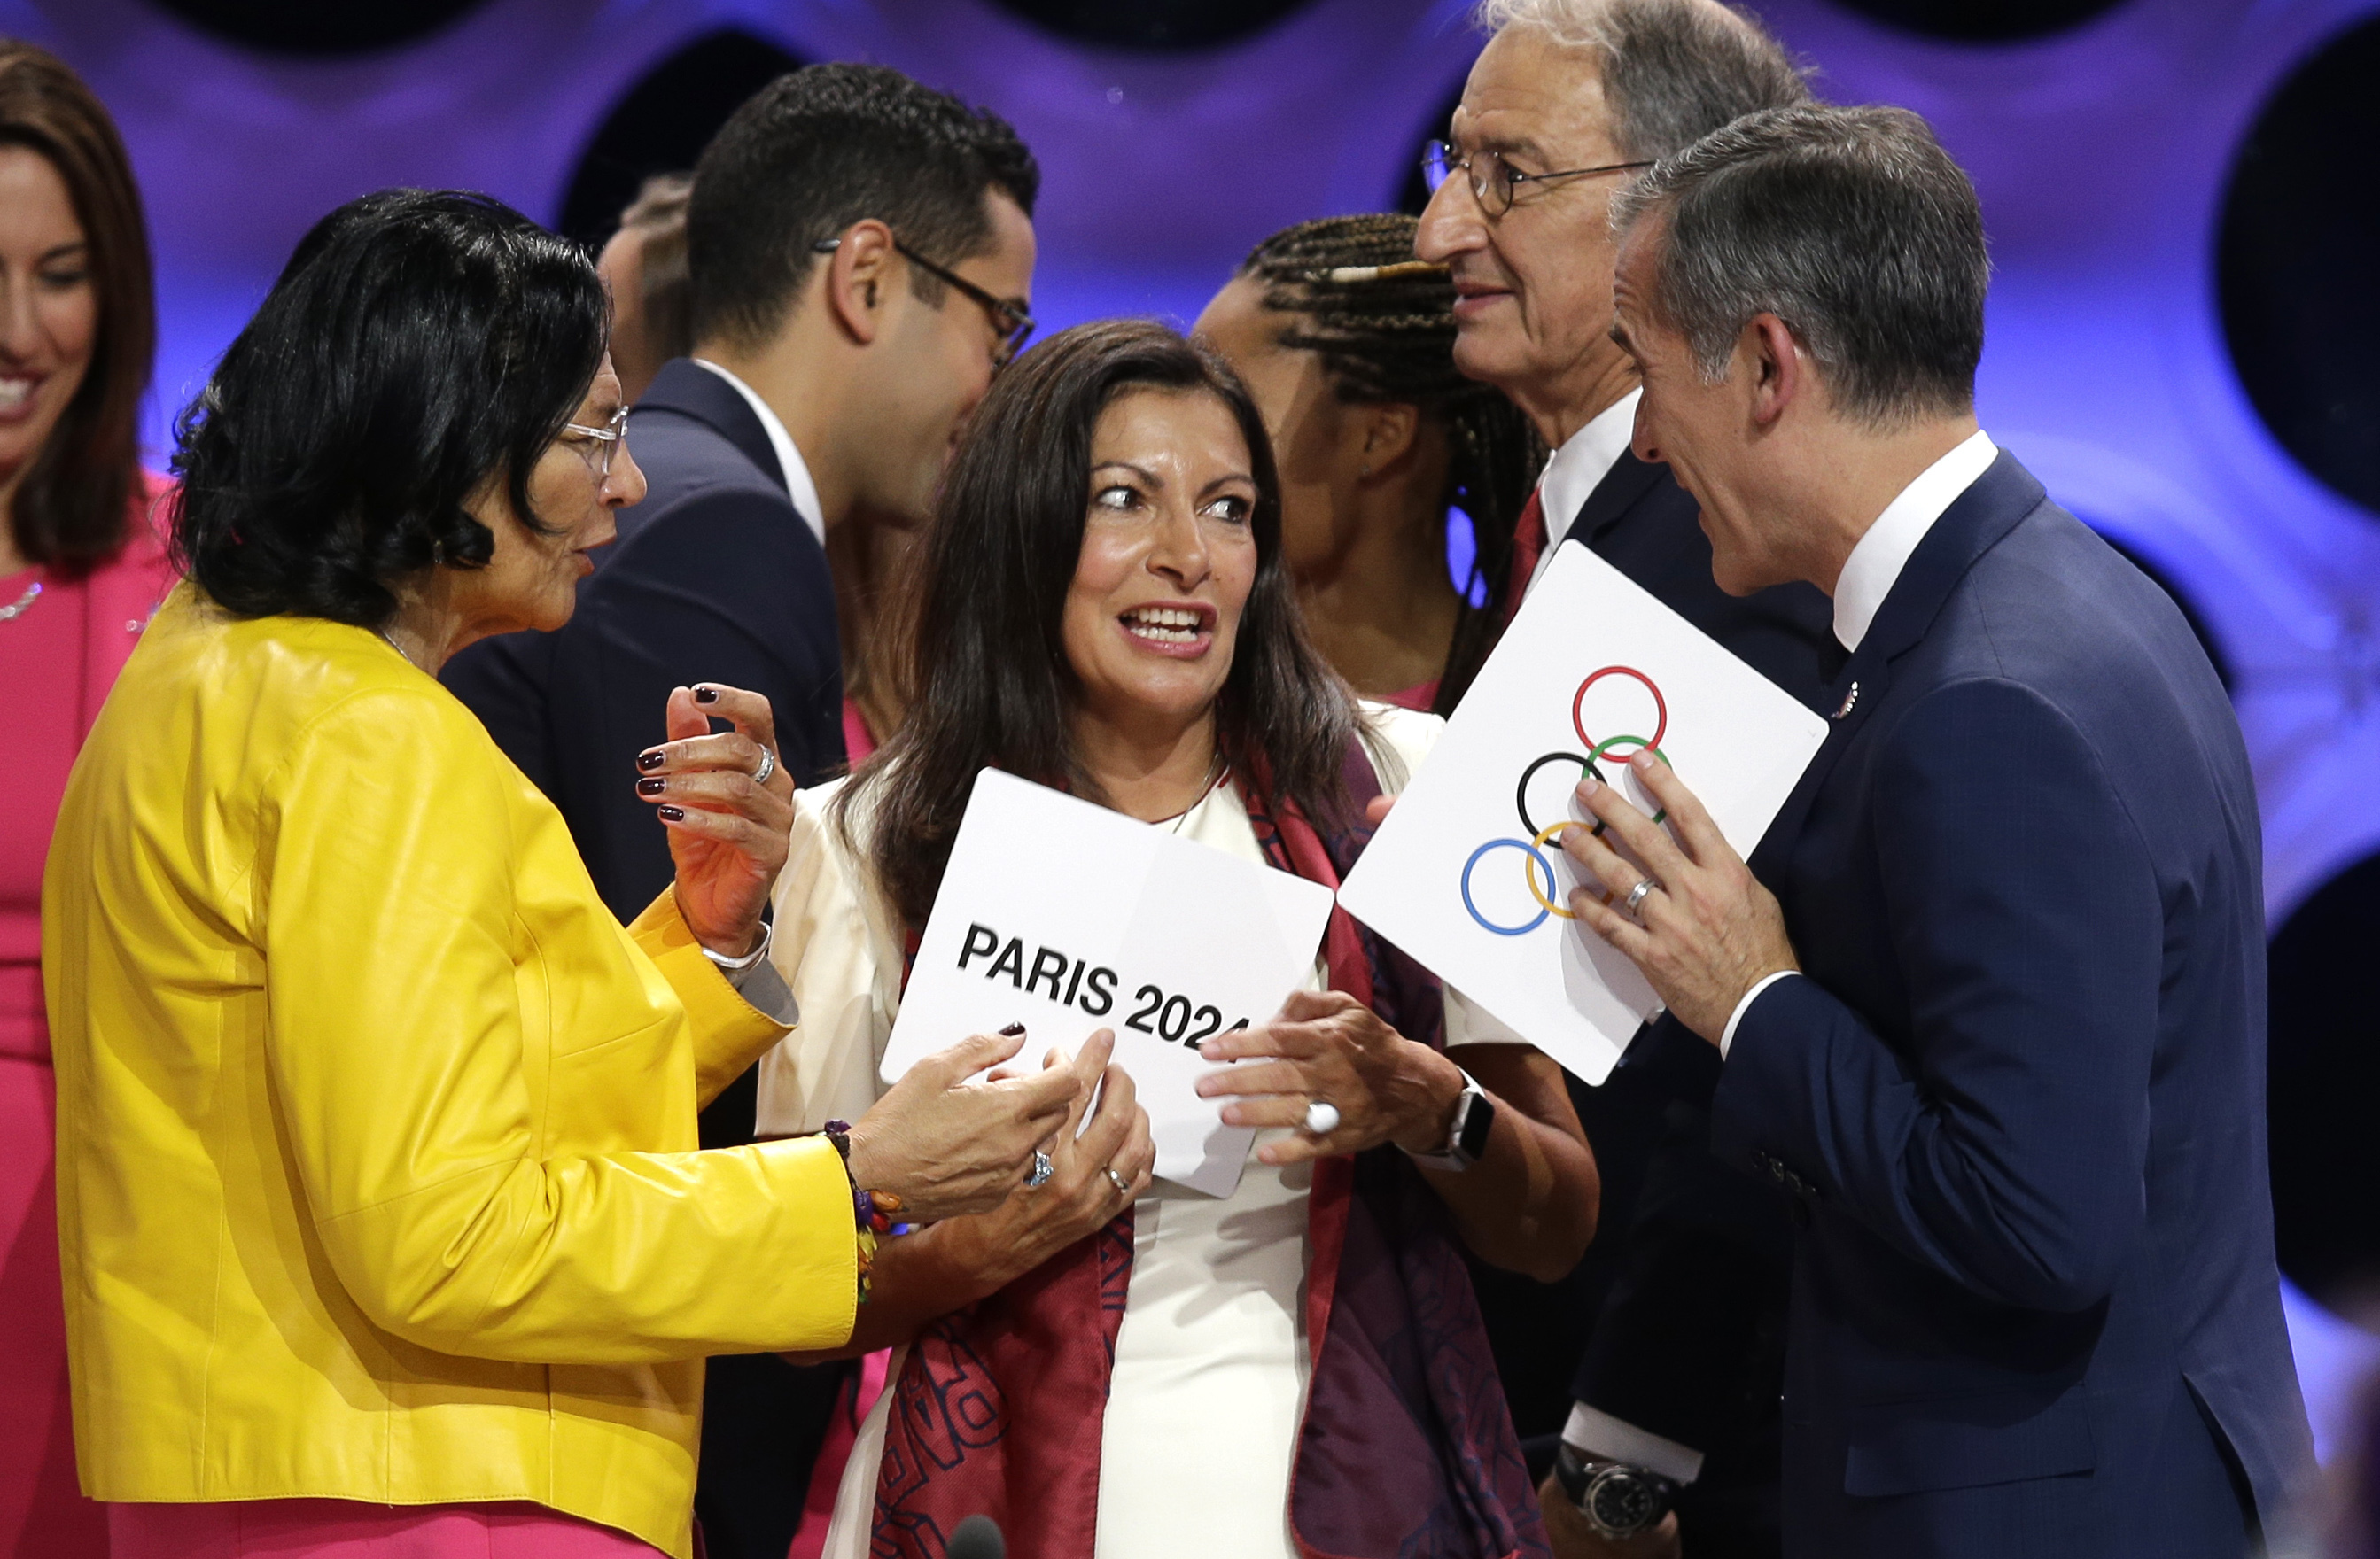 Doubling down: Paris awarded '24 Olympics, LA gets '28